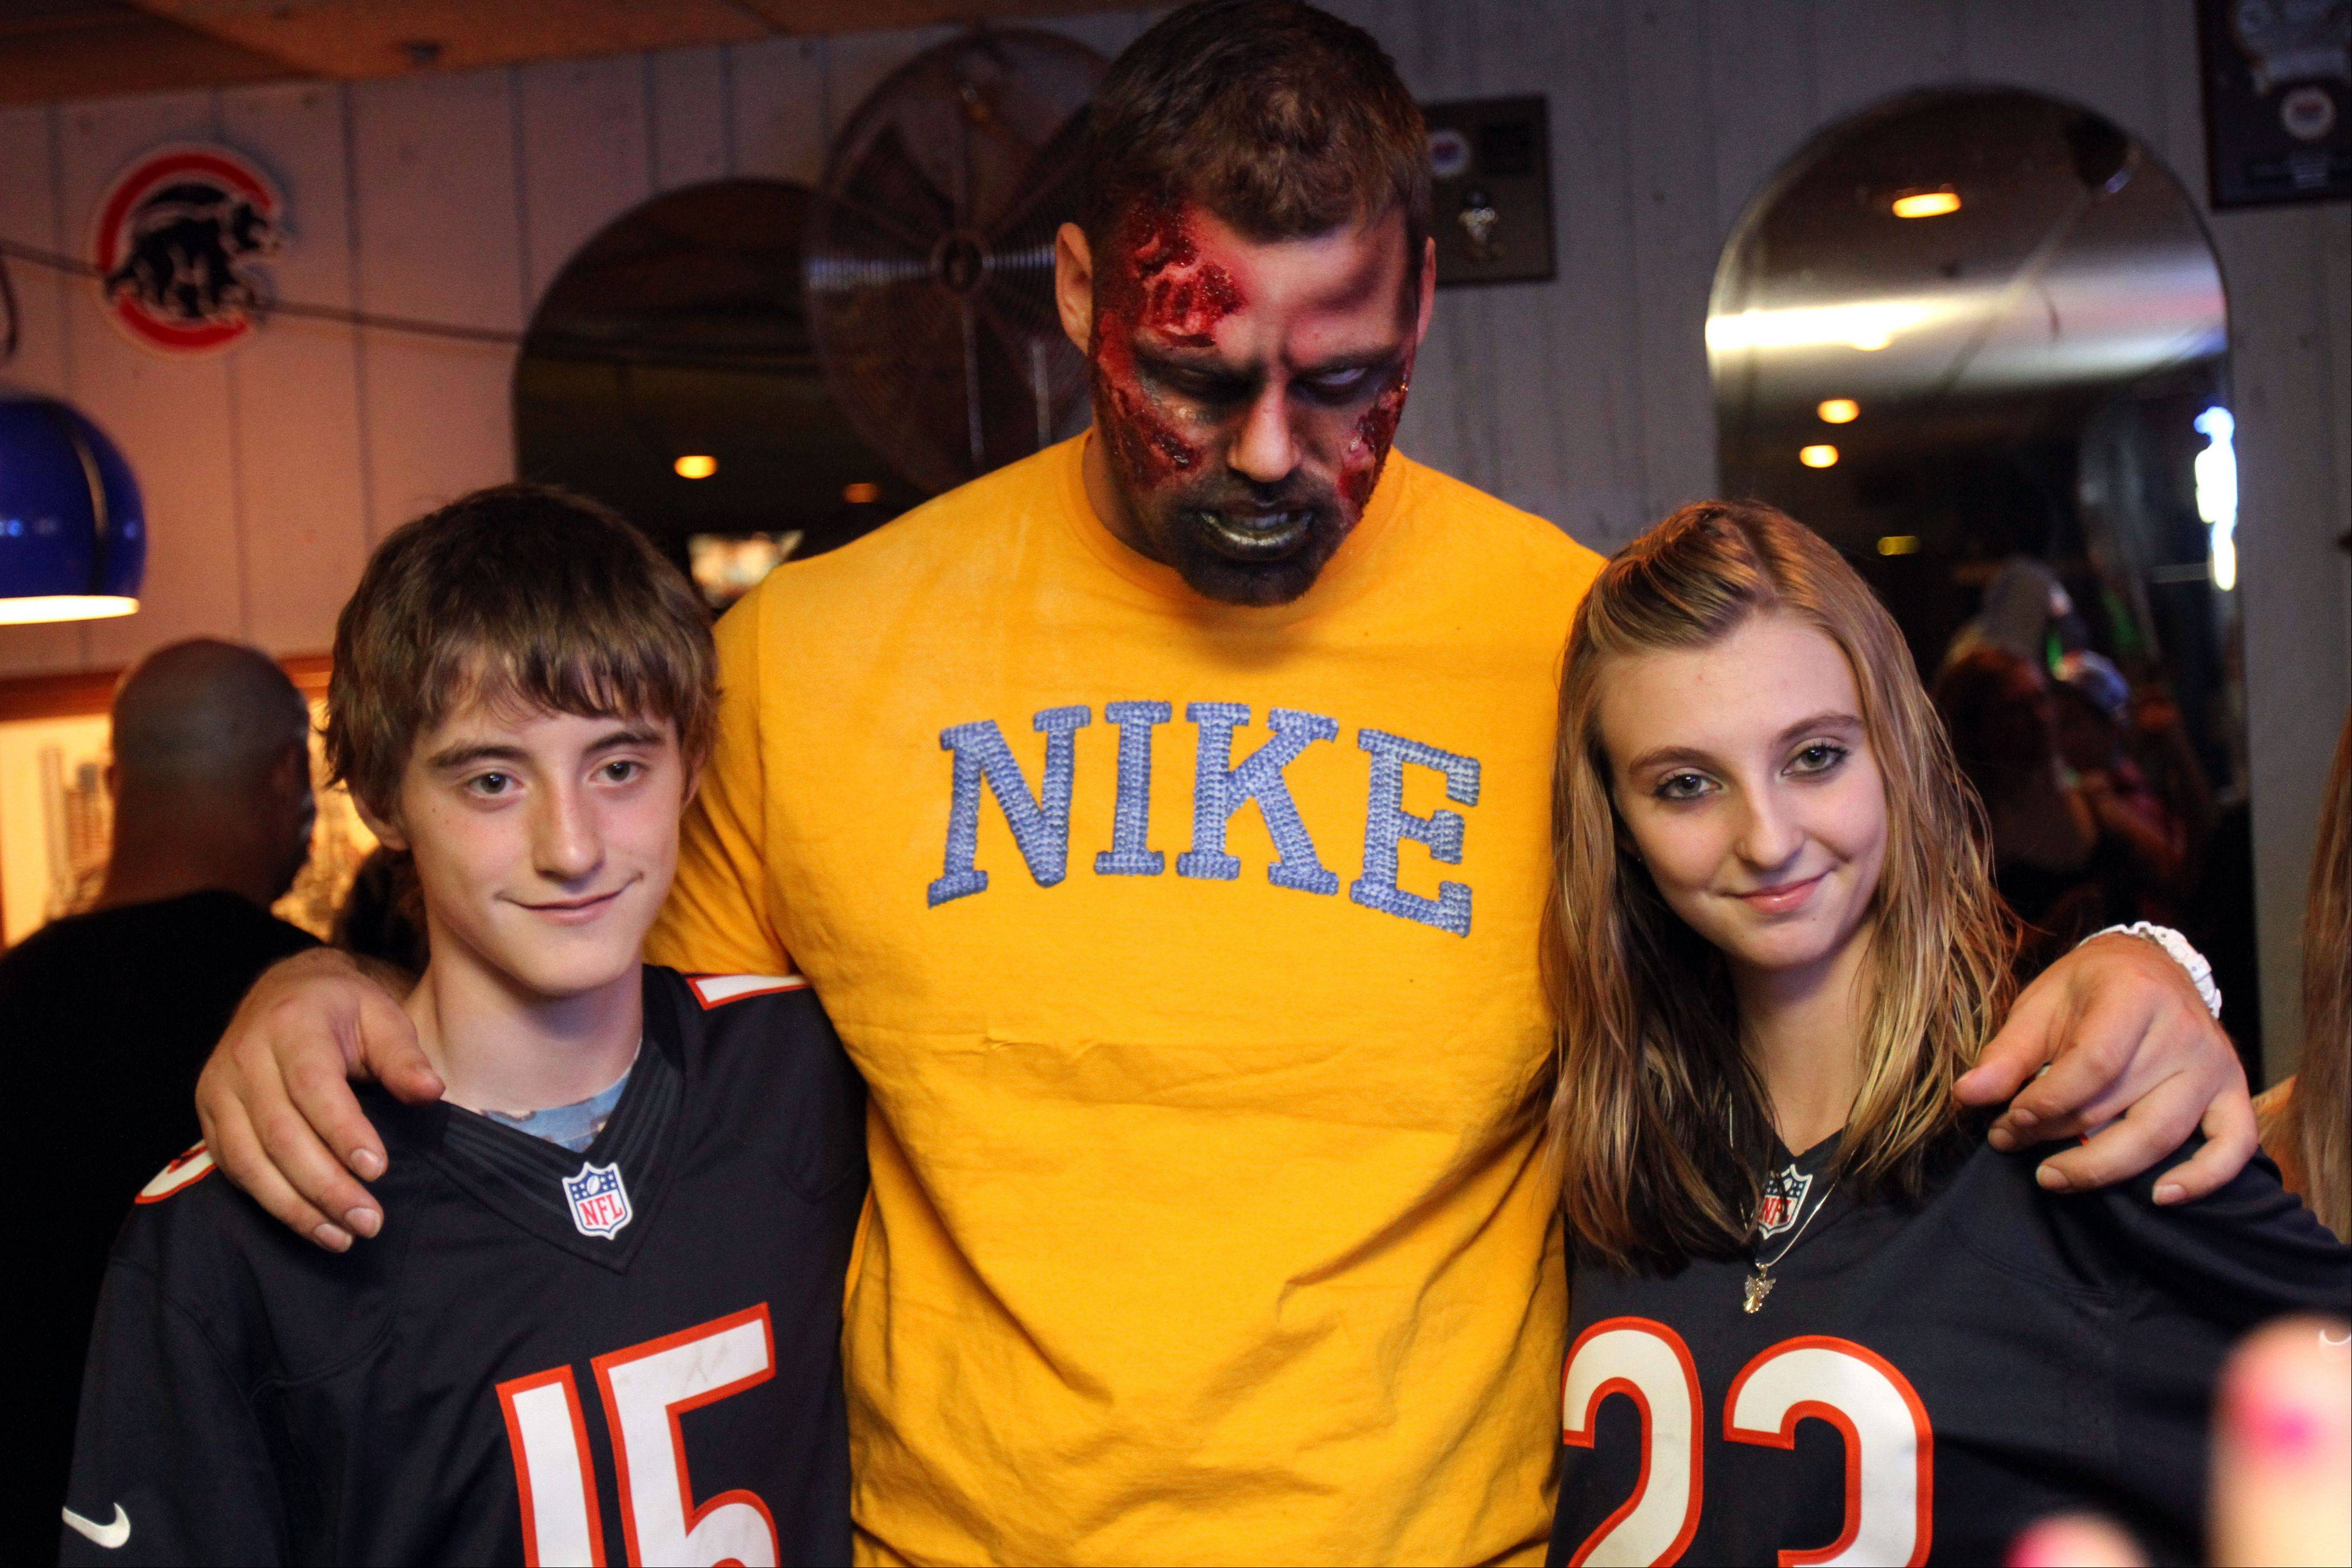 Bears offensive lineman Gabe Carimi poses with Brandon Pettry, 13, and his sister Alexandra, 15, the children of murder victim William Christopher Pettry.